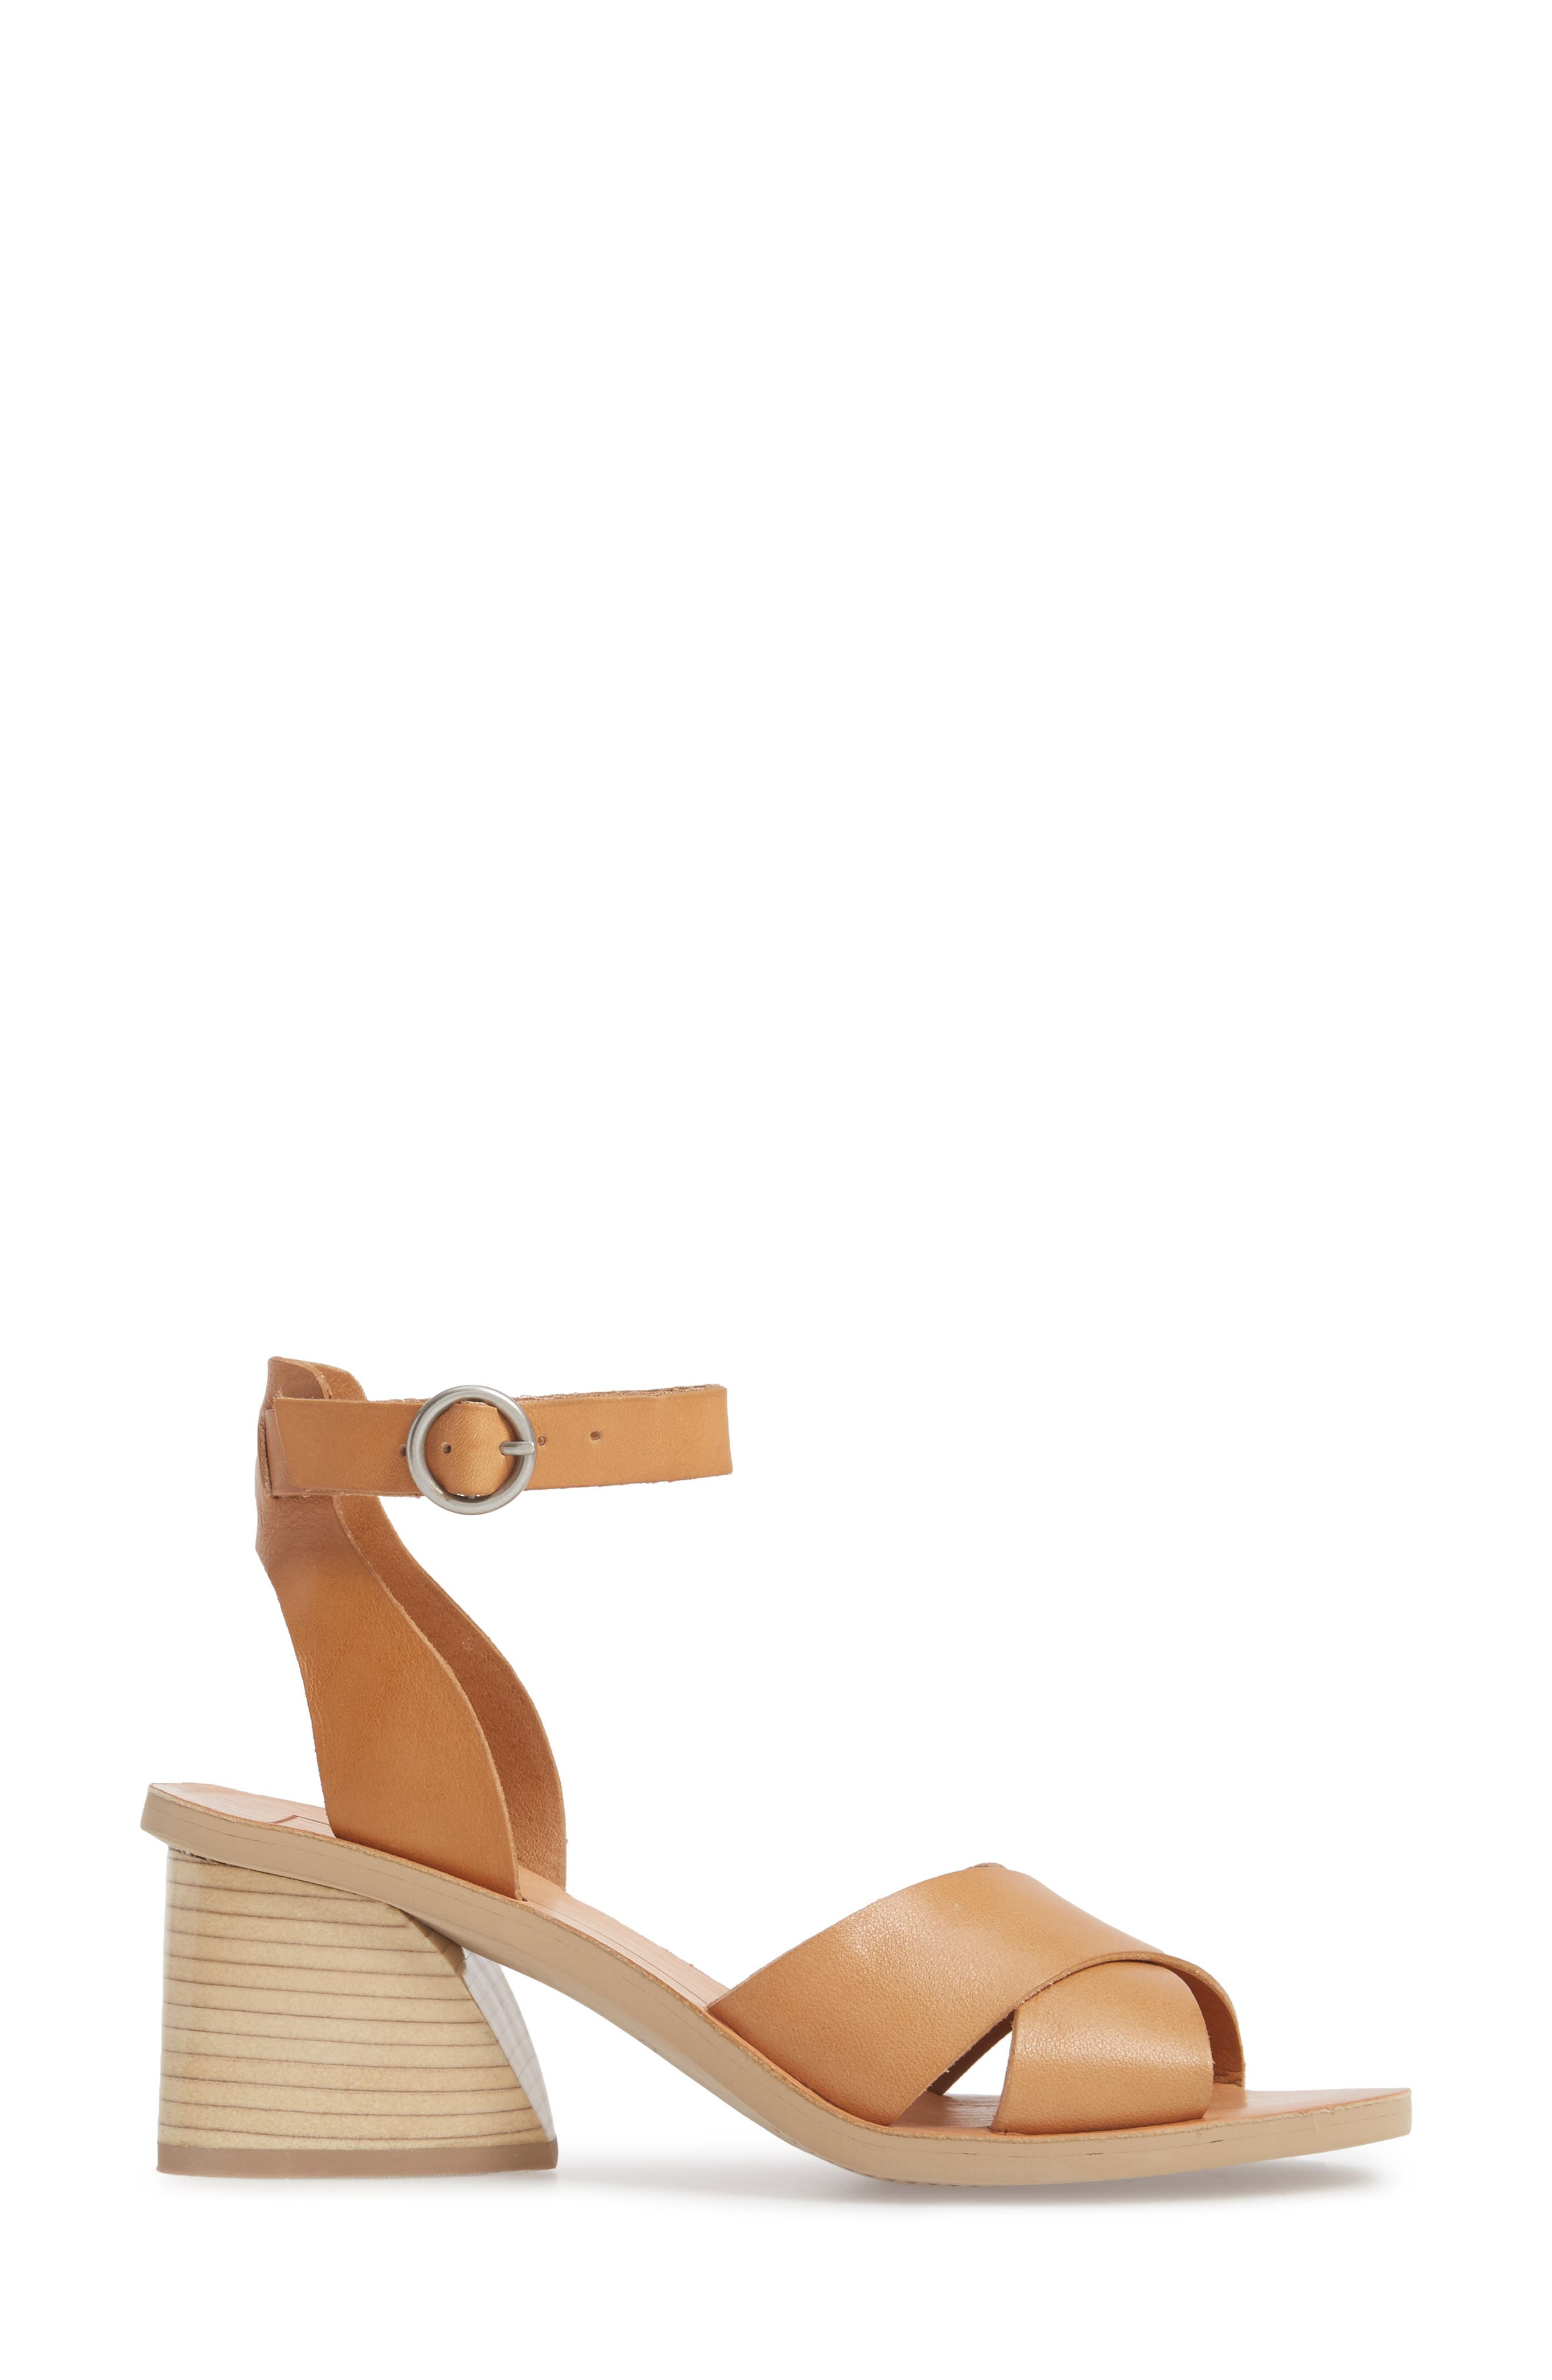 Roman Flared Heel Sandal,                             Alternate thumbnail 3, color,                             Caramel Leather